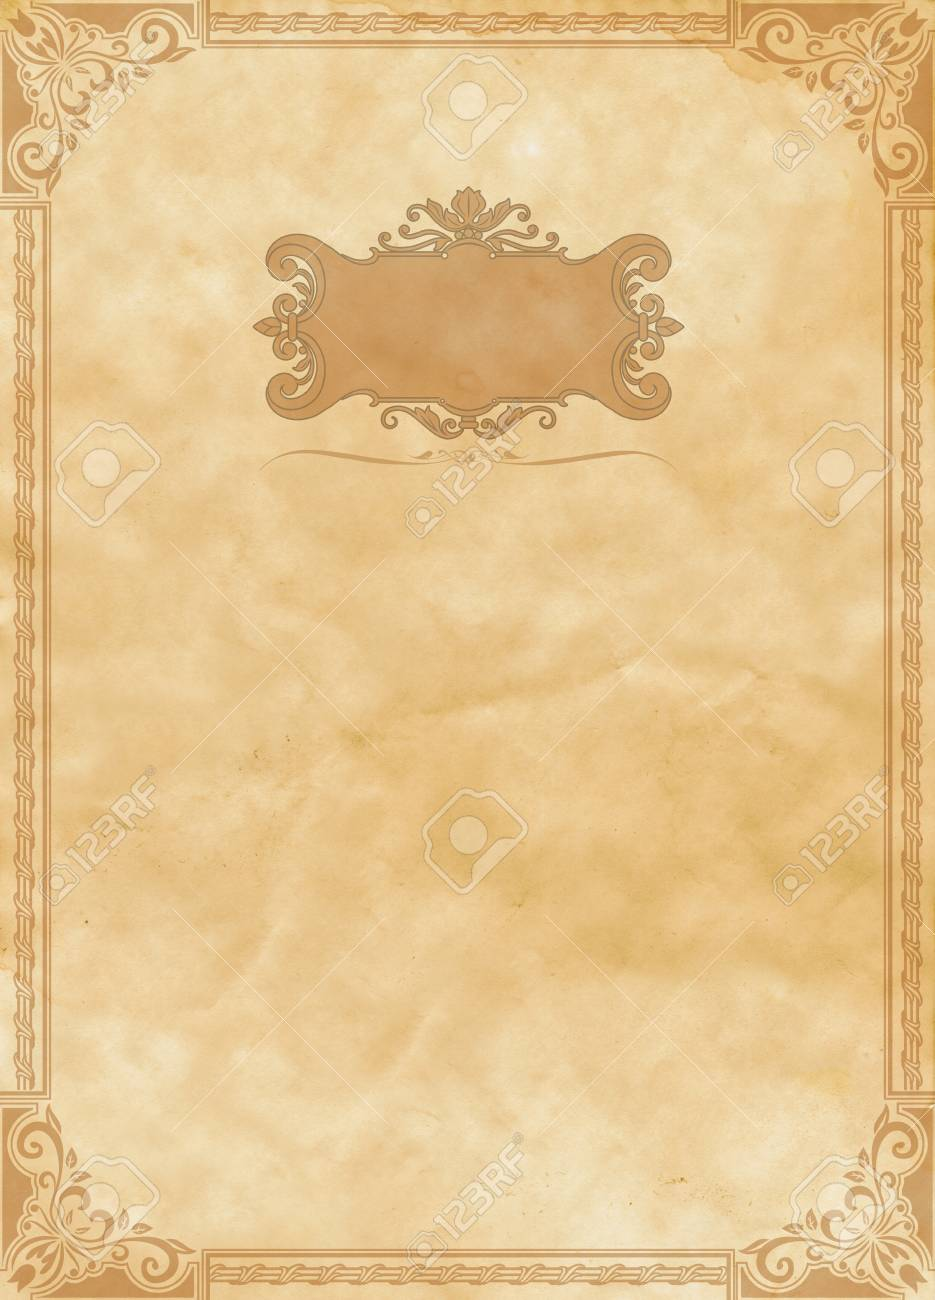 old grunge paper backdrop with decorative vintage border. stock